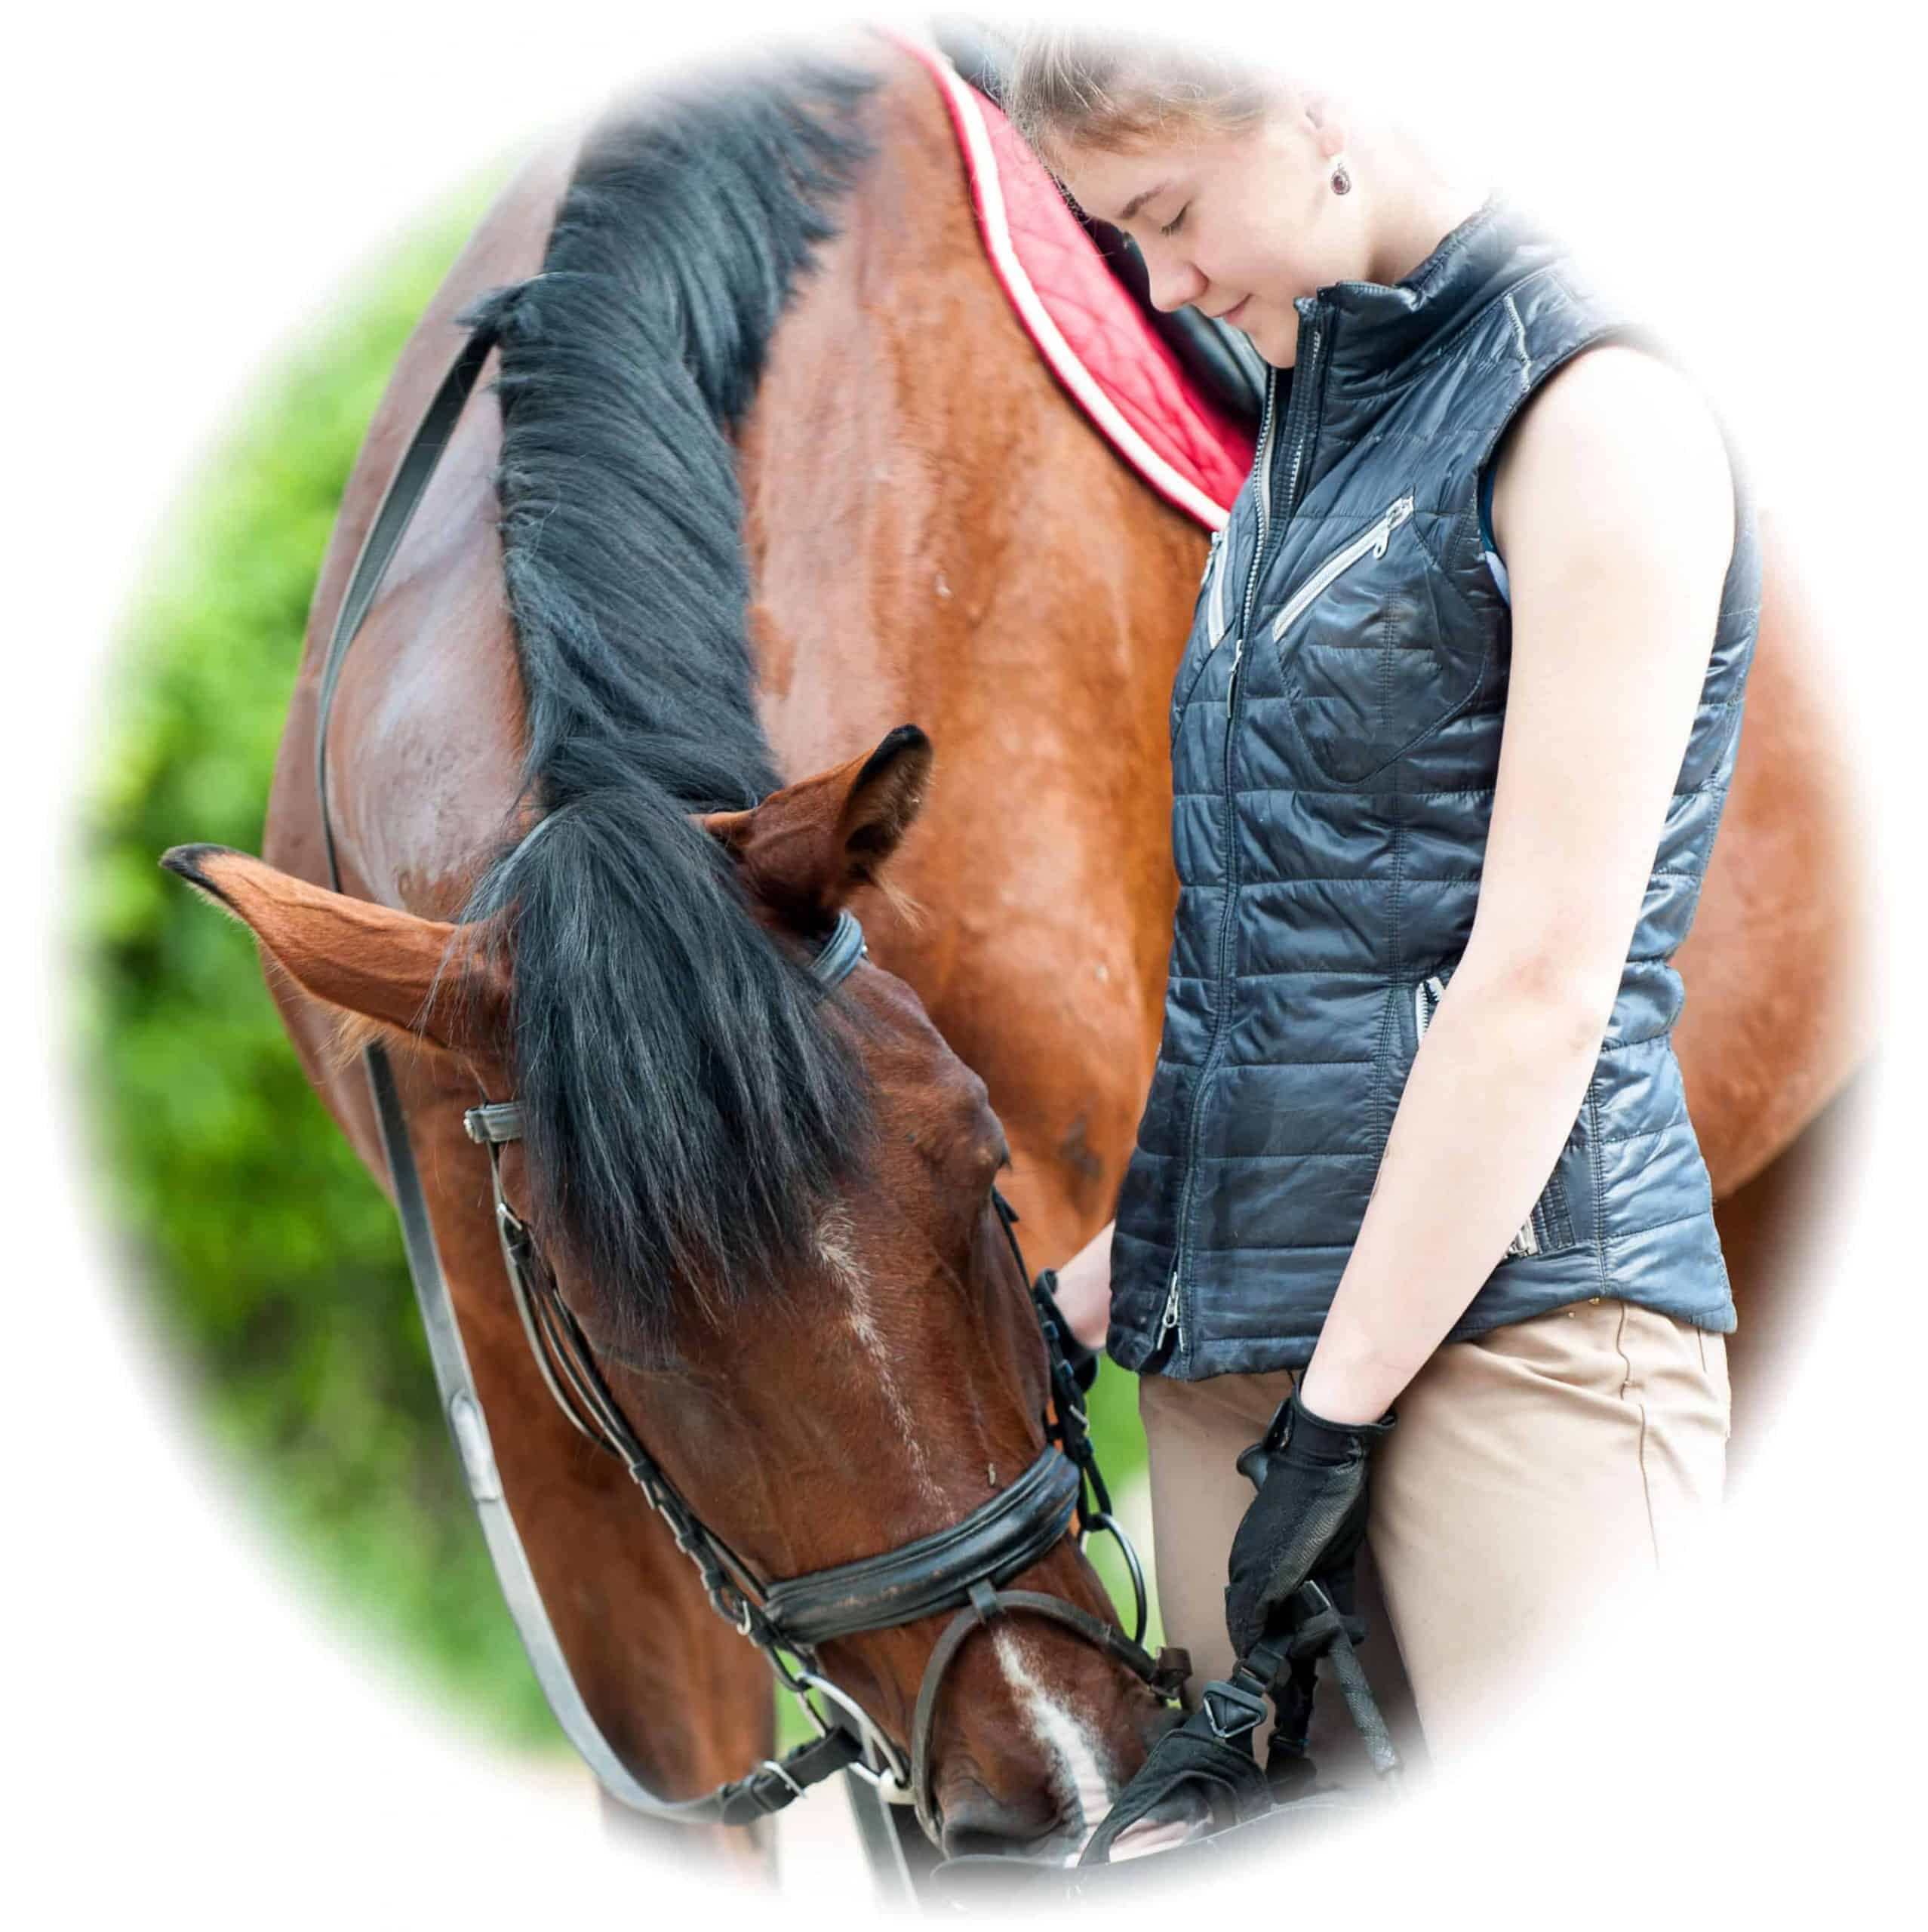 Perth Horsecare Perth - for careers and jobs in equine